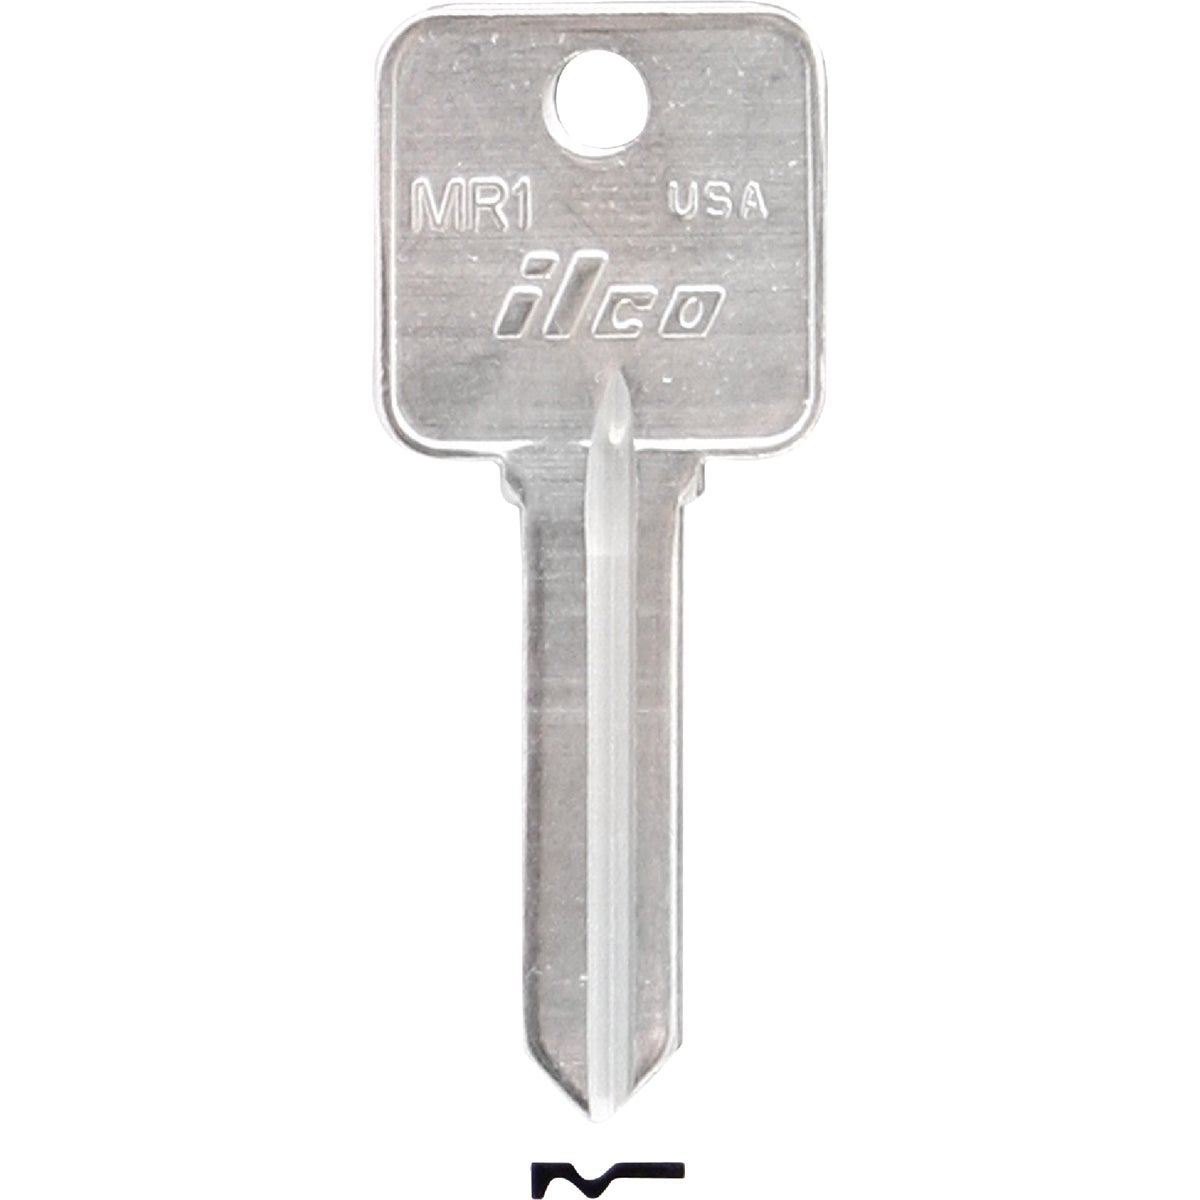 MR1 ROSSEAU CABINET KEY - MR1 by Ilco Corp